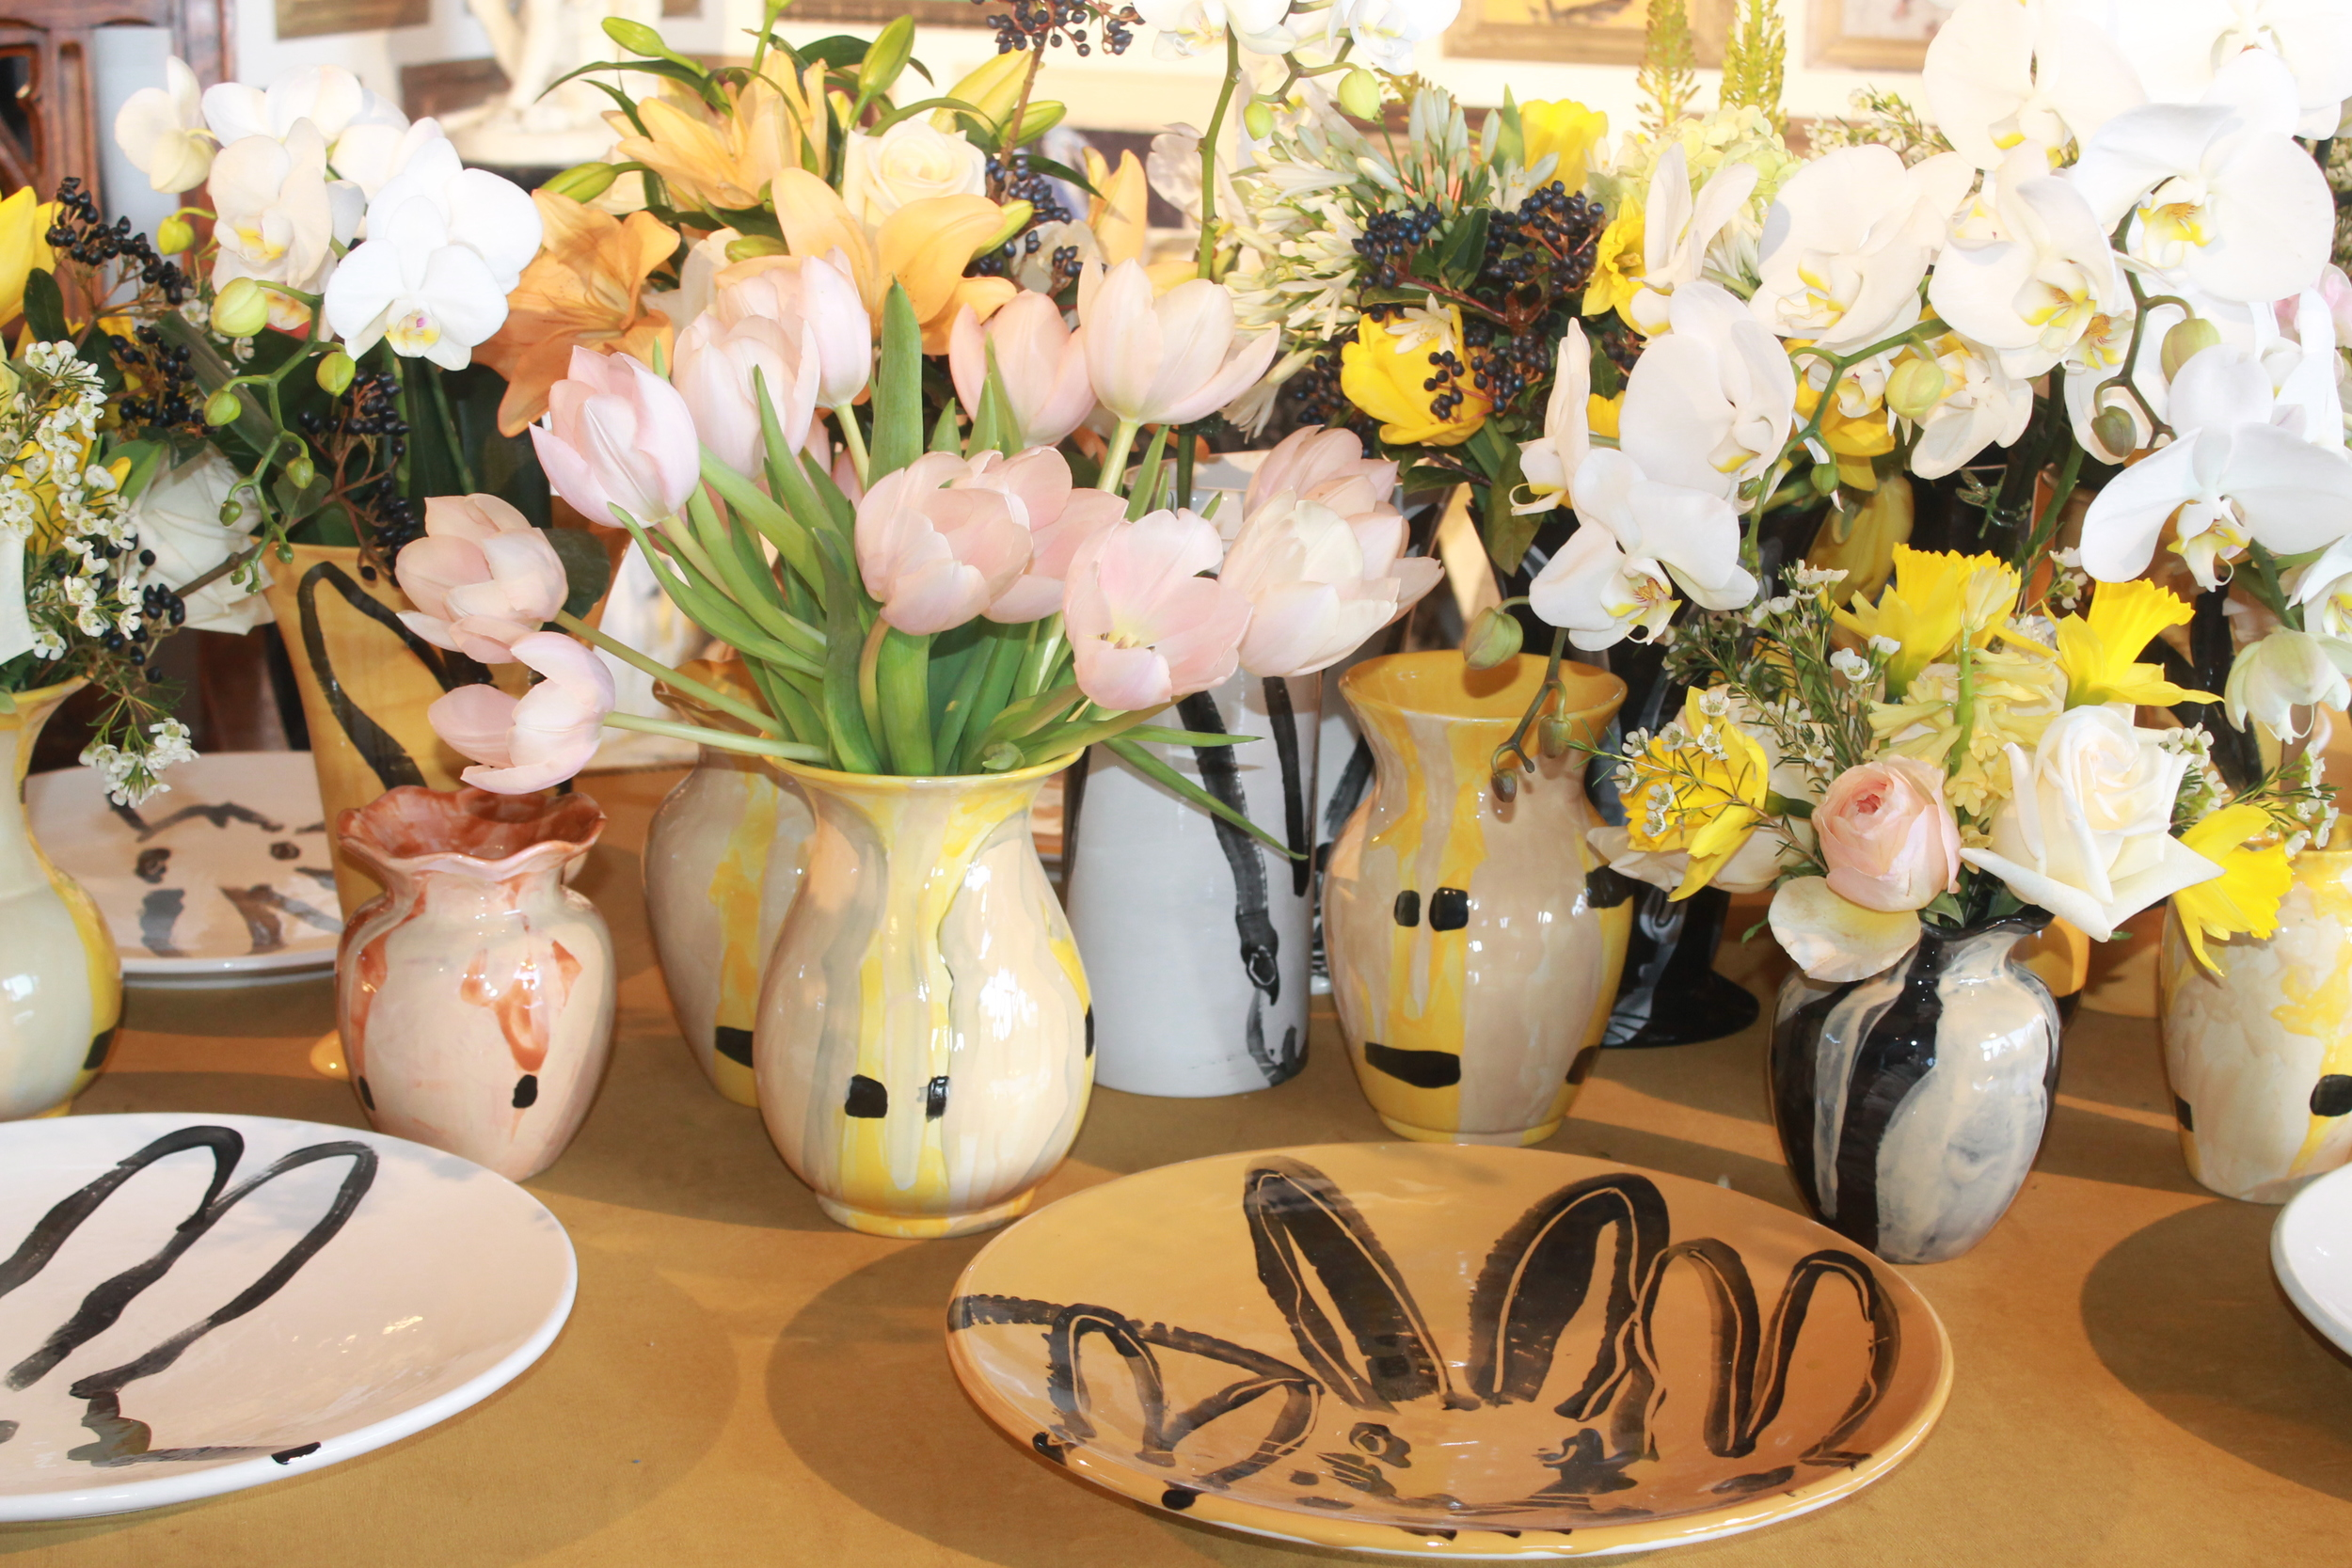 These wonderful plates by Slonem for Kravet would look lovely on my Easter table!   Image property of Jessica Gordon Ryan.